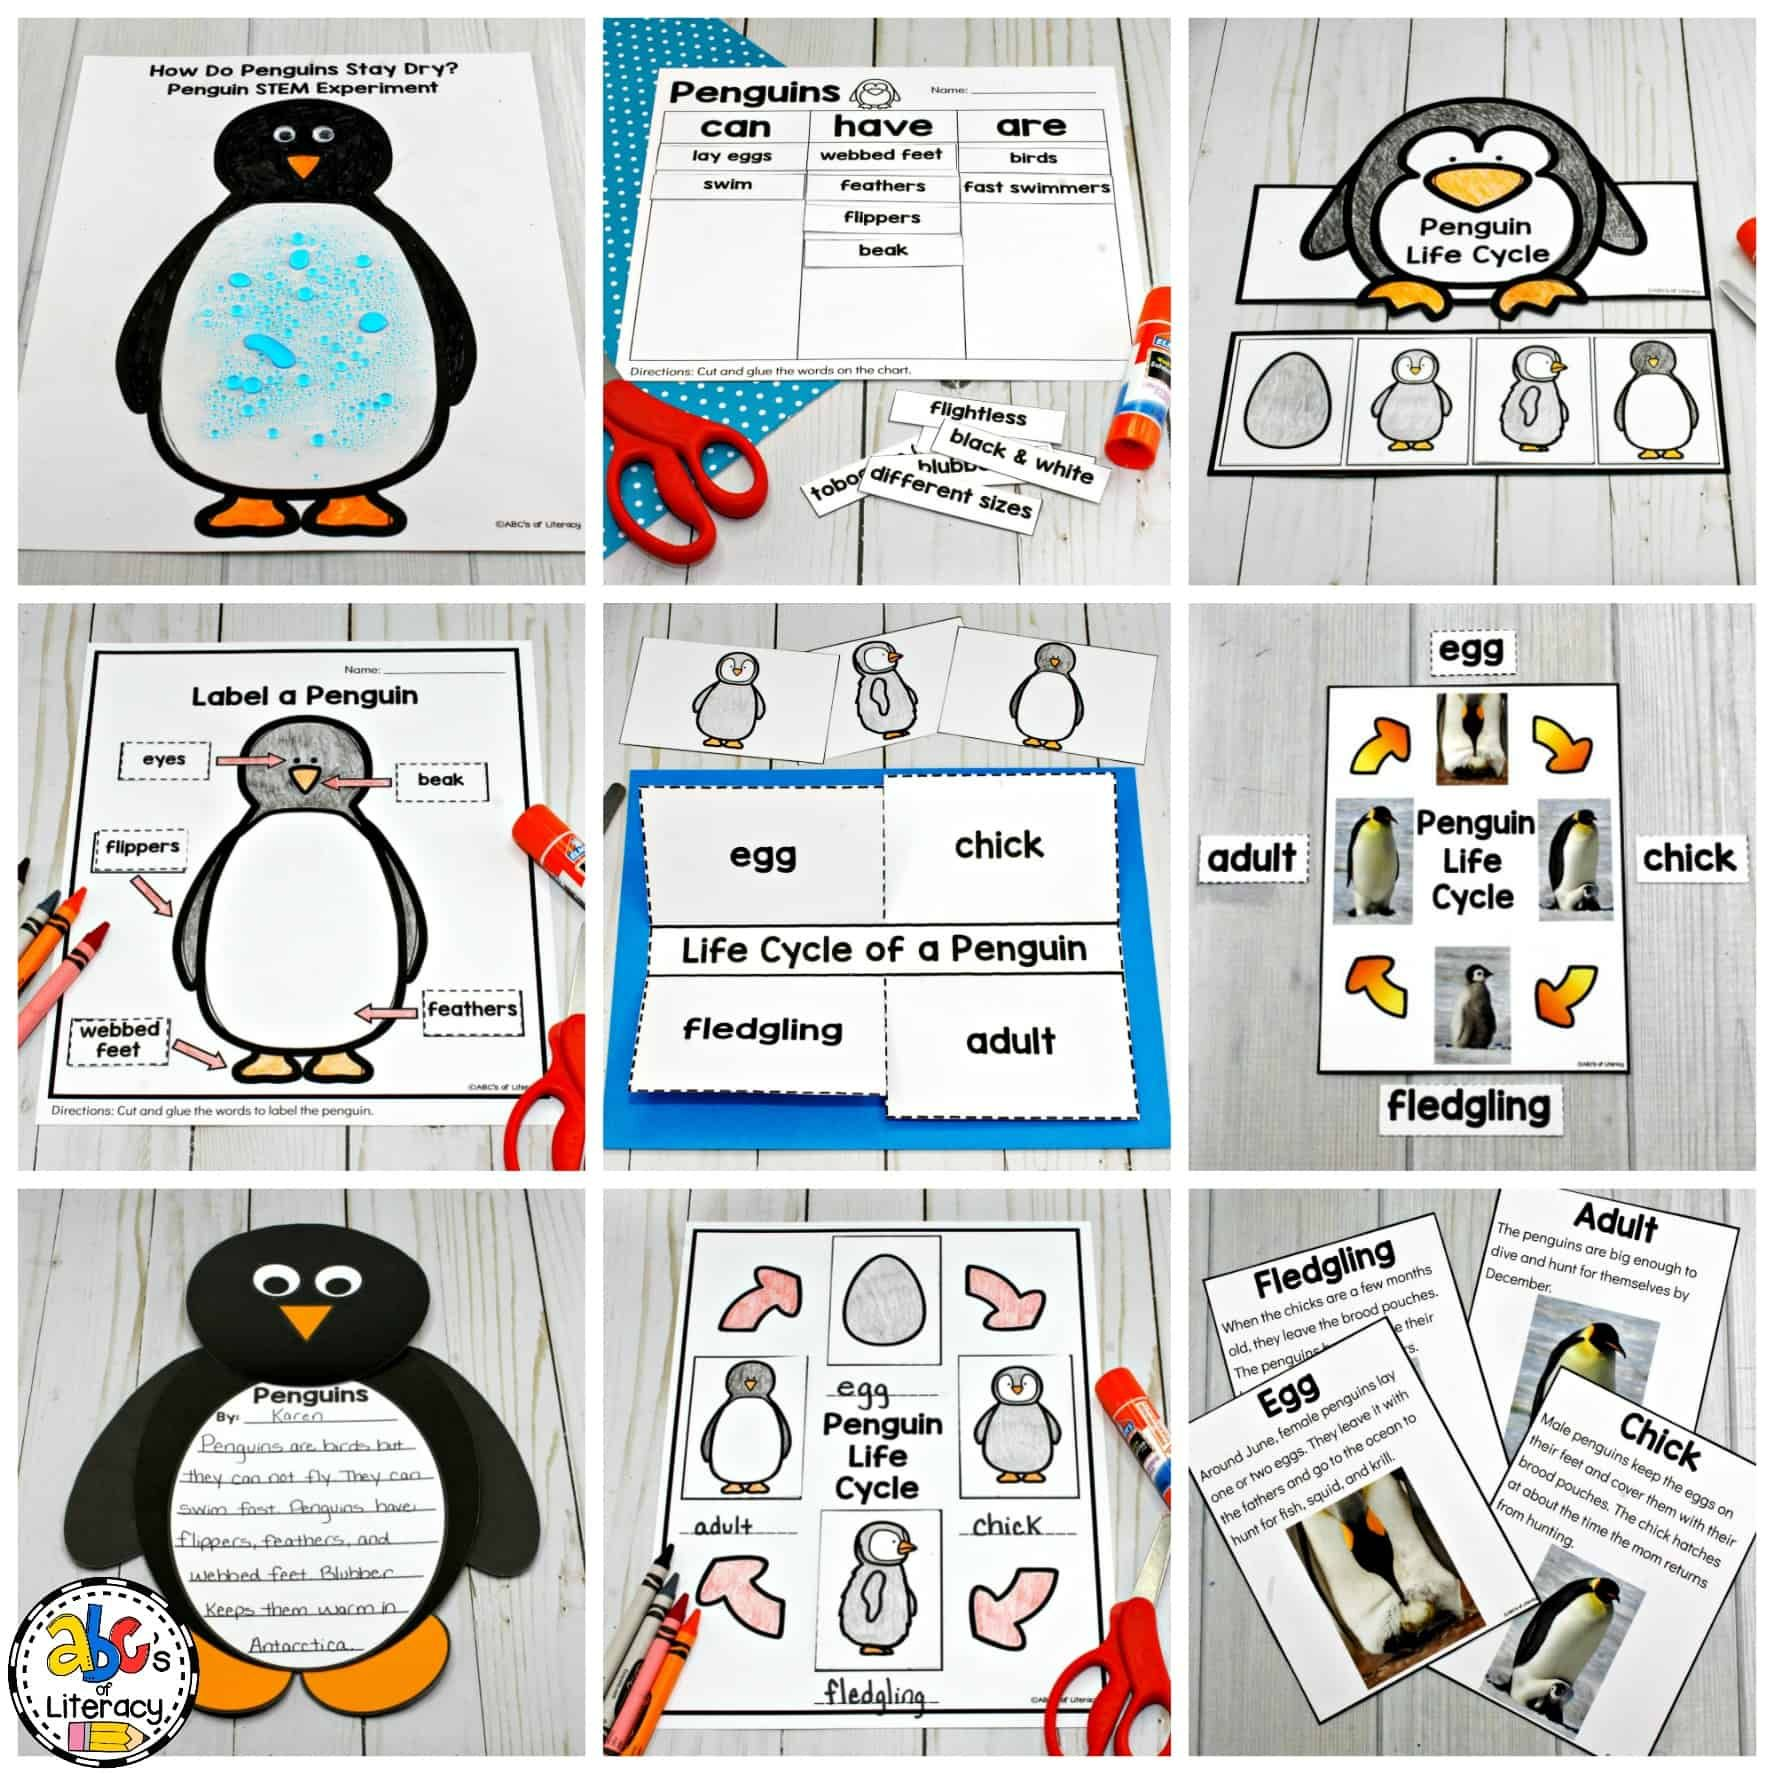 How Do Penguins Stay Dry Penguin Science Experiment In 2020 Penguin Activities Science Experiments Penguin Life Cycle